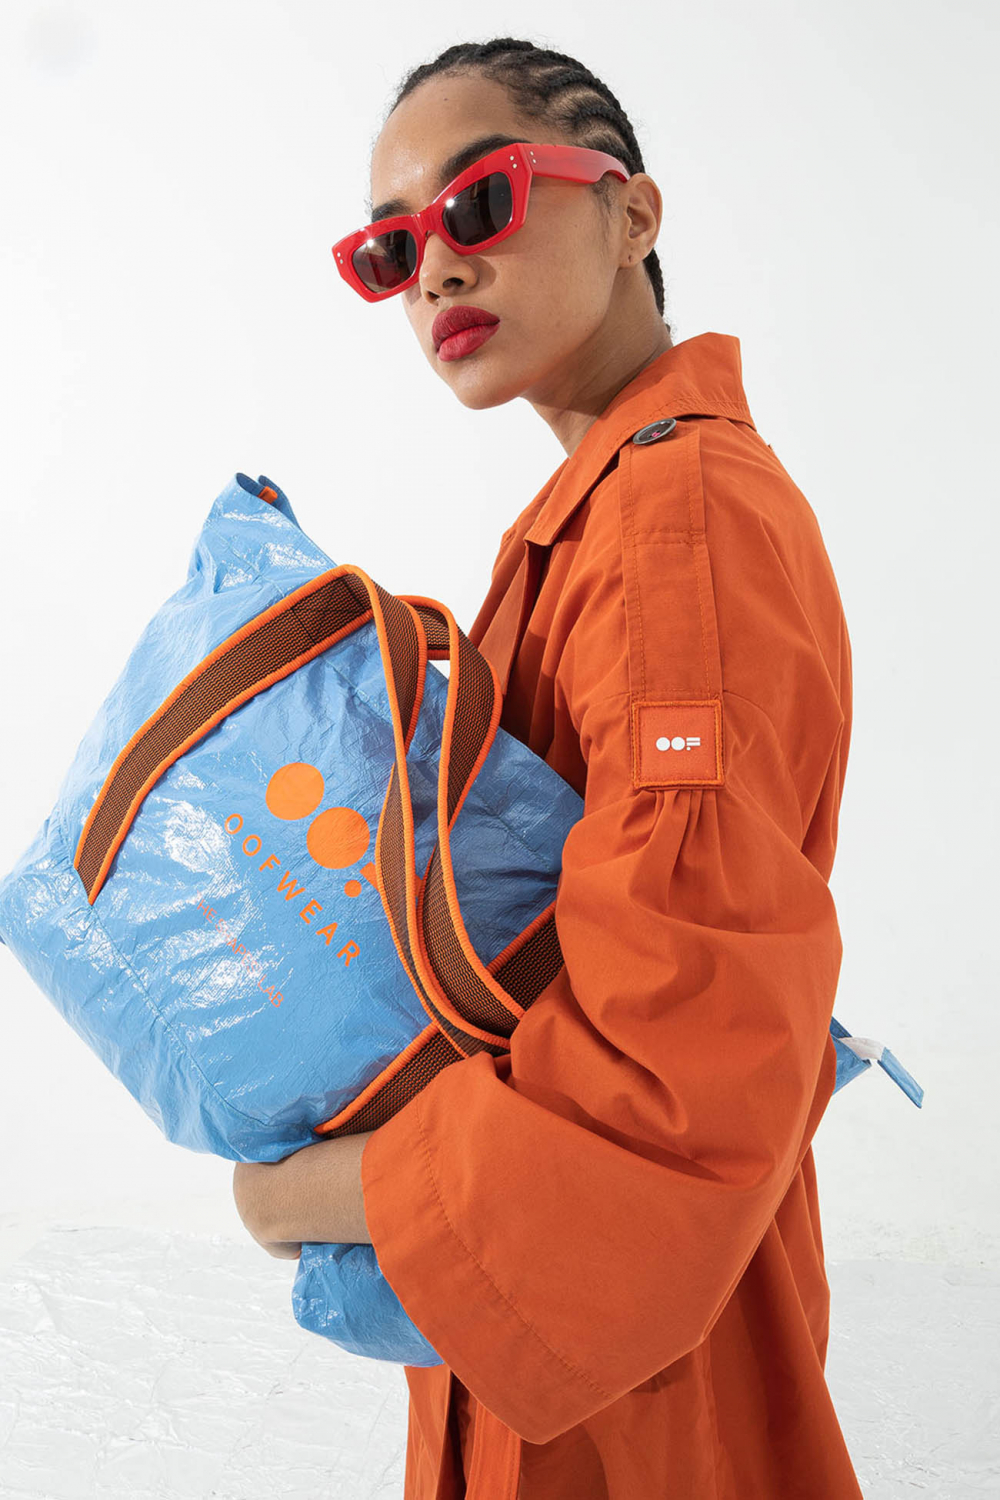 Glossy shopping bag with logo in sky blue